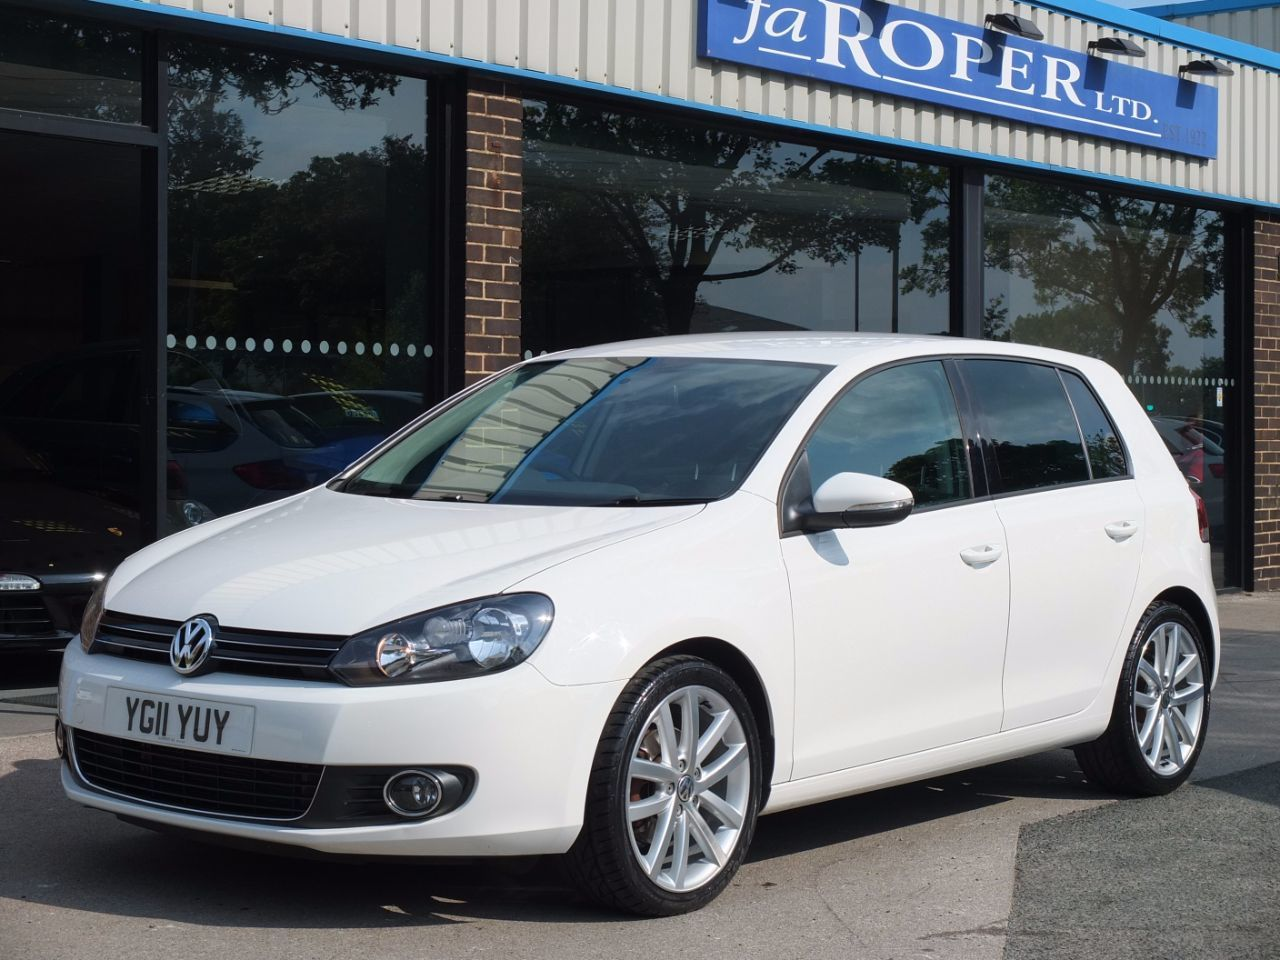 Volkswagen Golf 2.0 TDi 140 GT 5 door DSG Hatchback Diesel Candy White